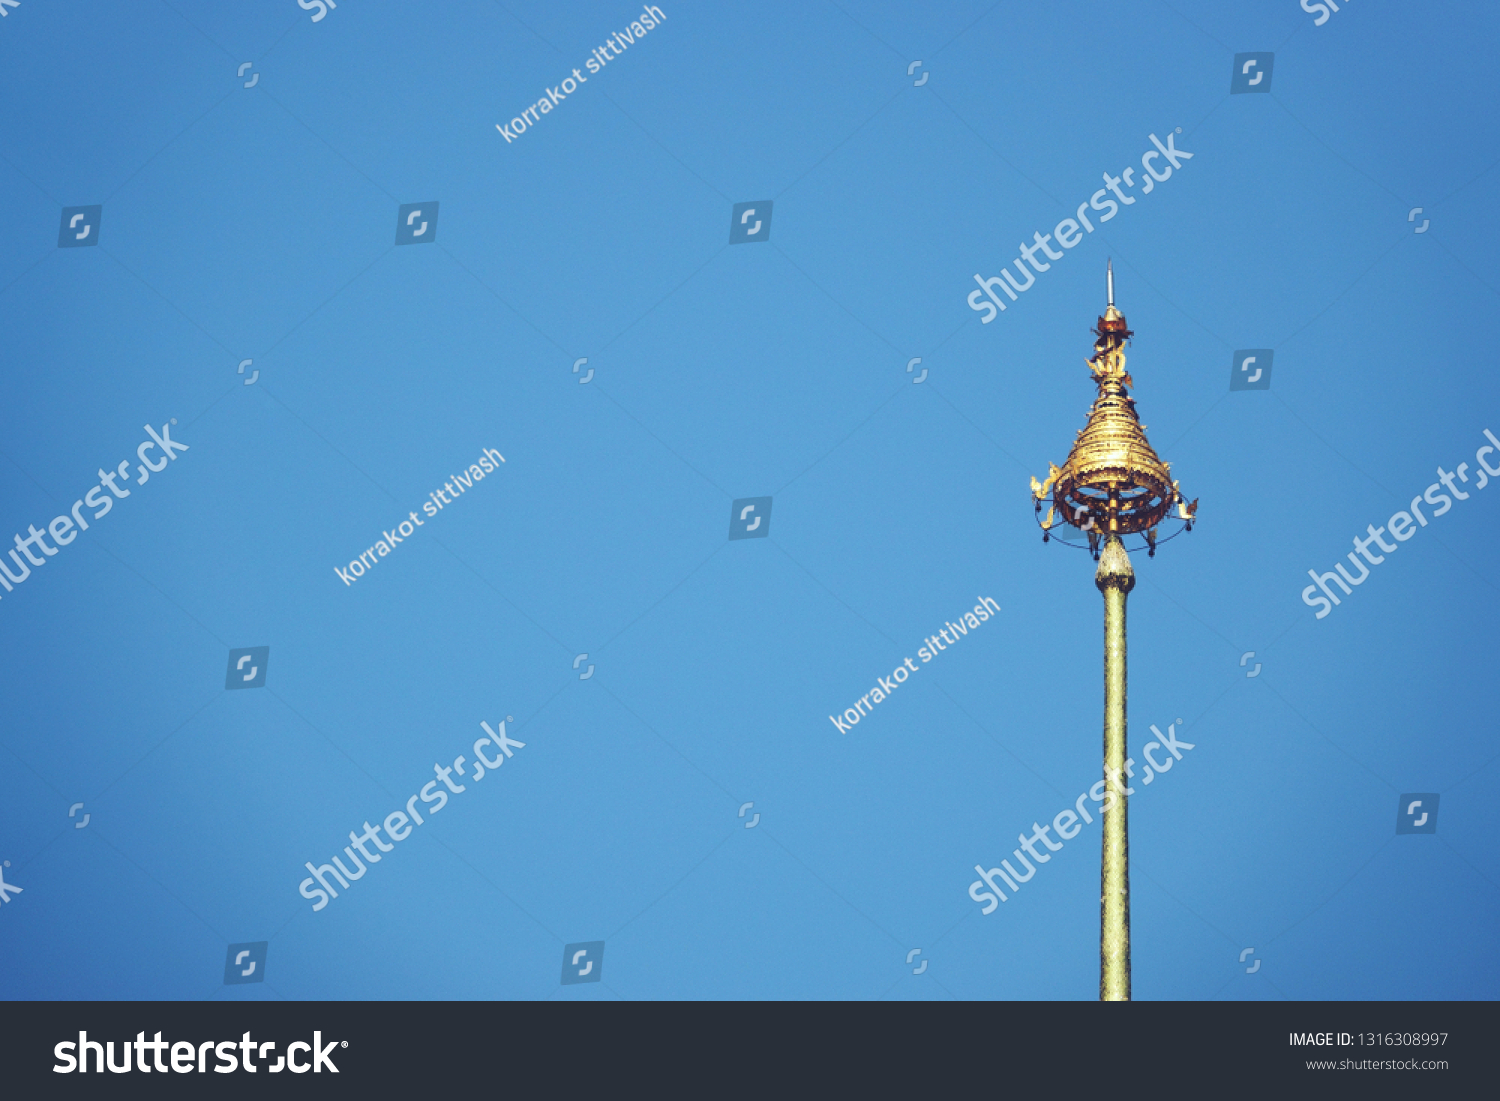 The Royal Nine-Tiered Umbrella Thailand ,Tiered umbrella with blue background, the highest point of the temple #1316308997